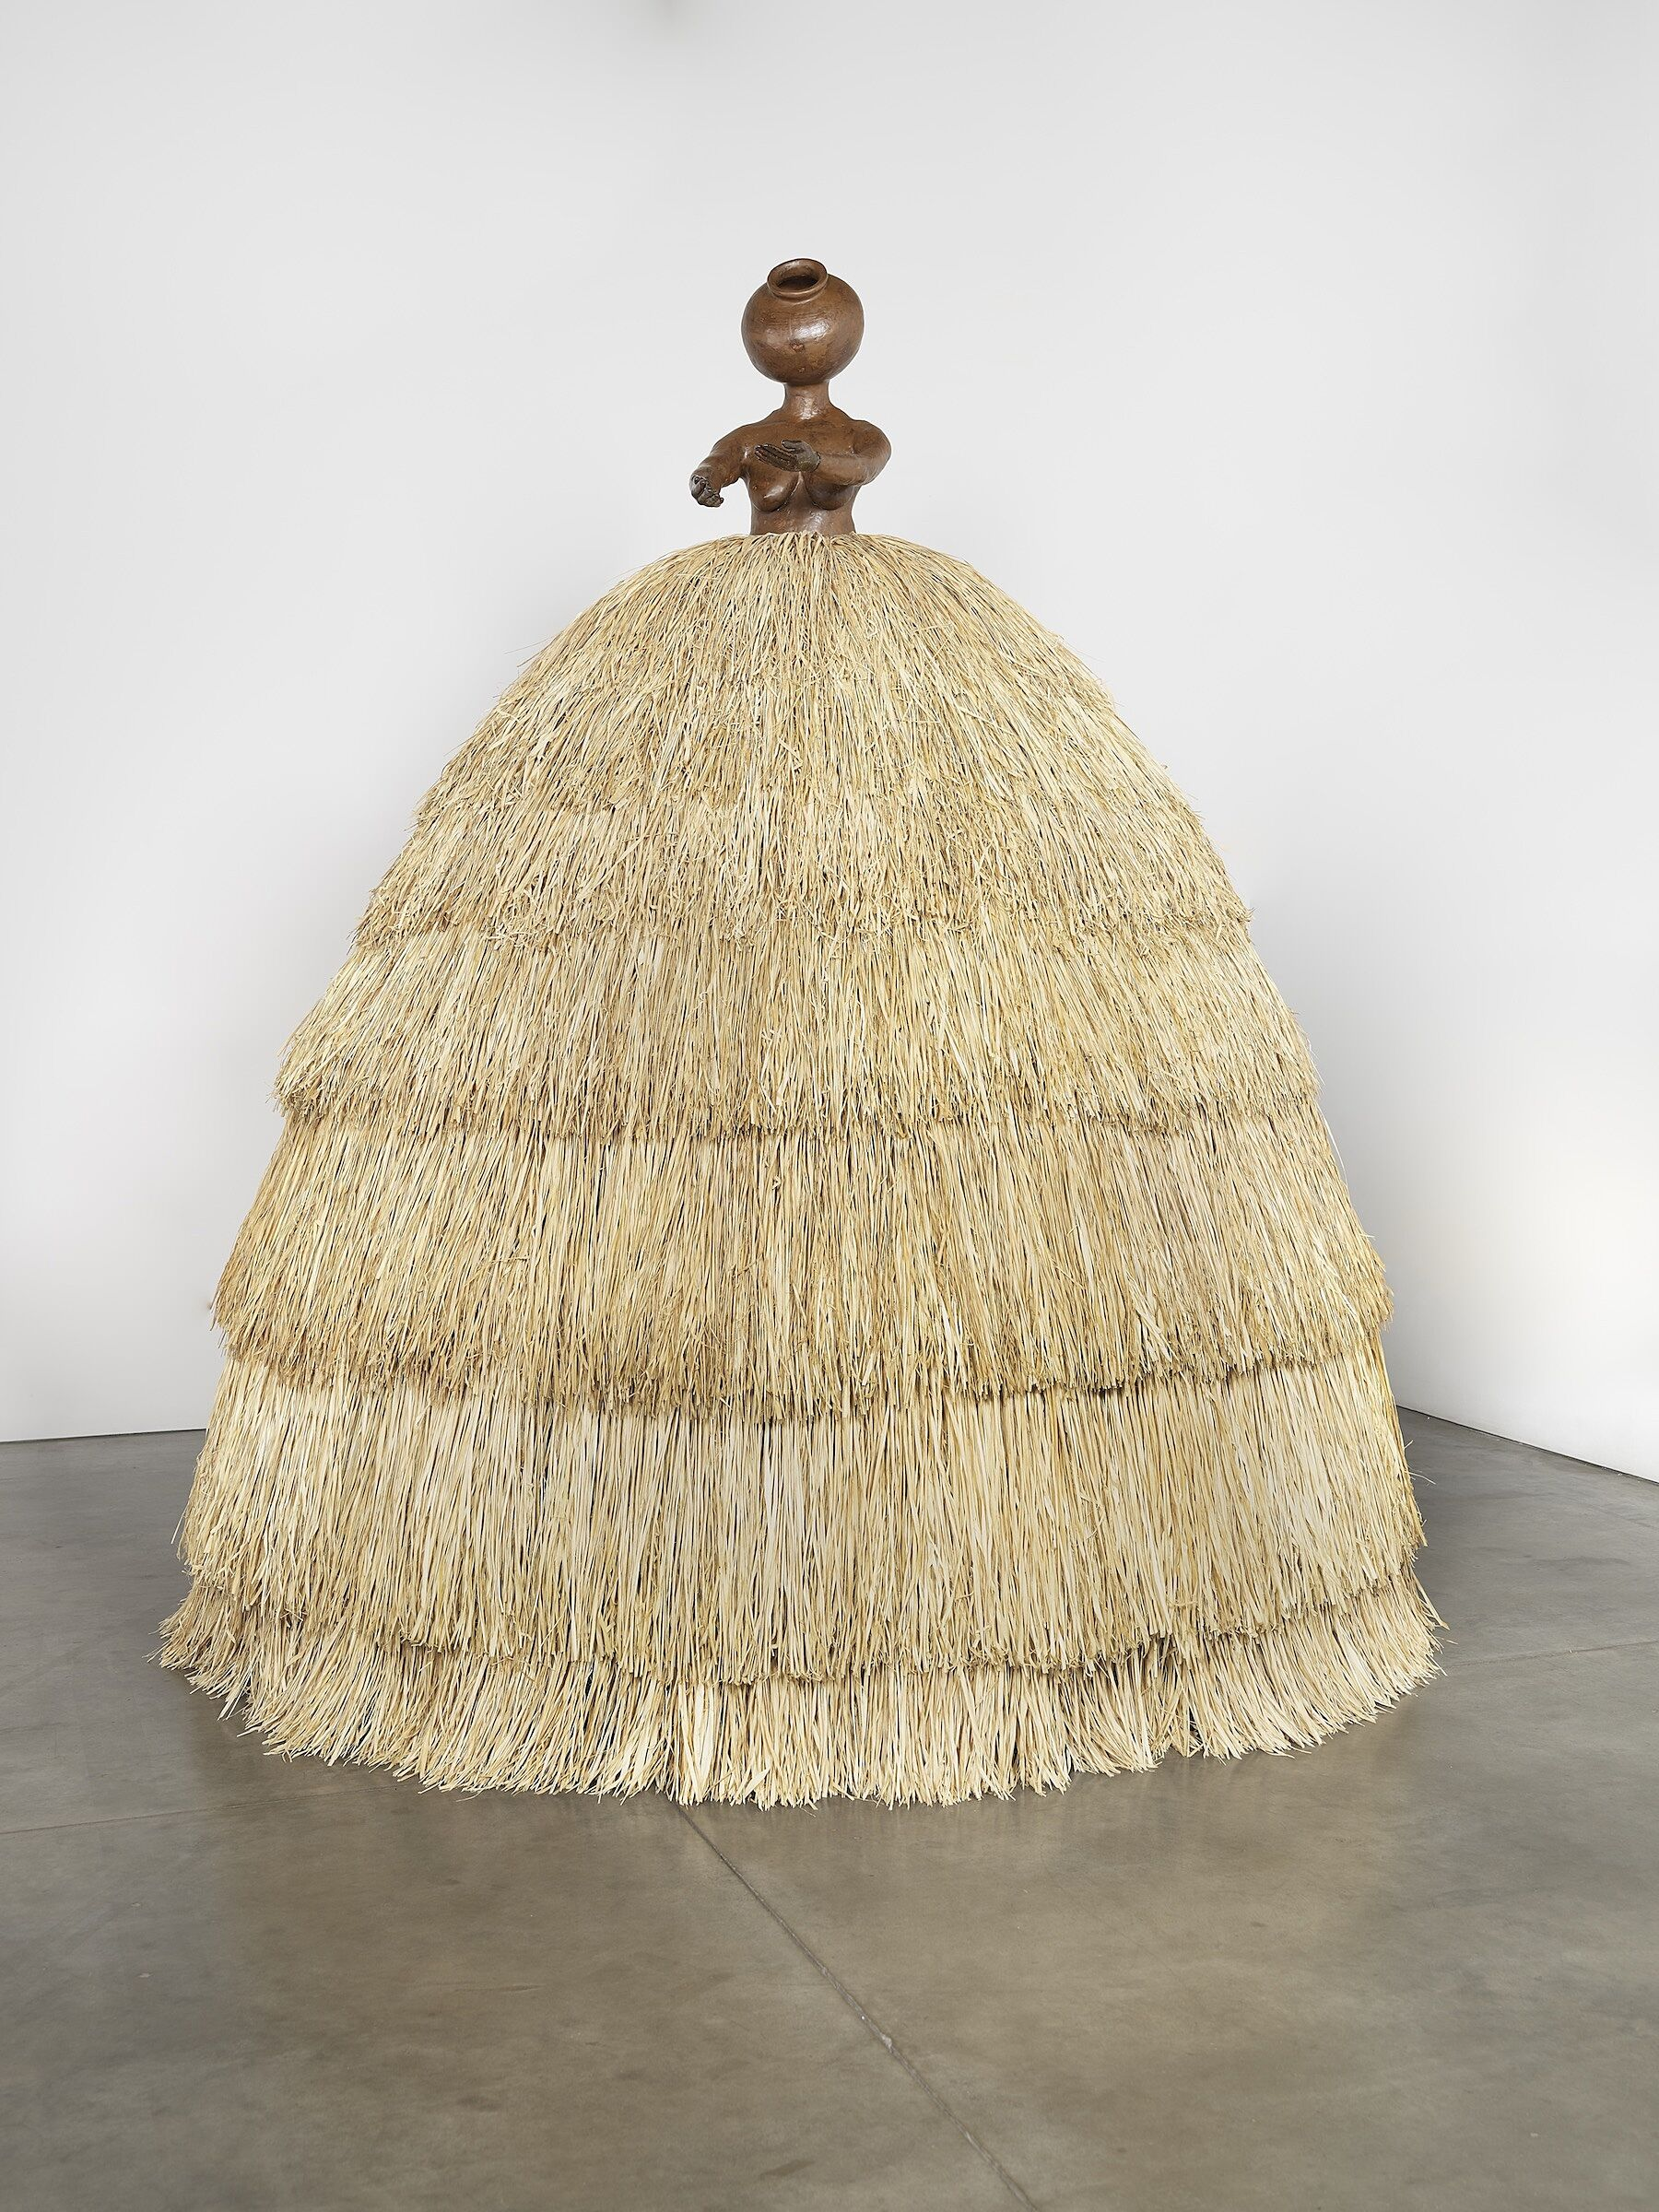 A sculpture of a small stone figure wearing a wide straw-like skirt.